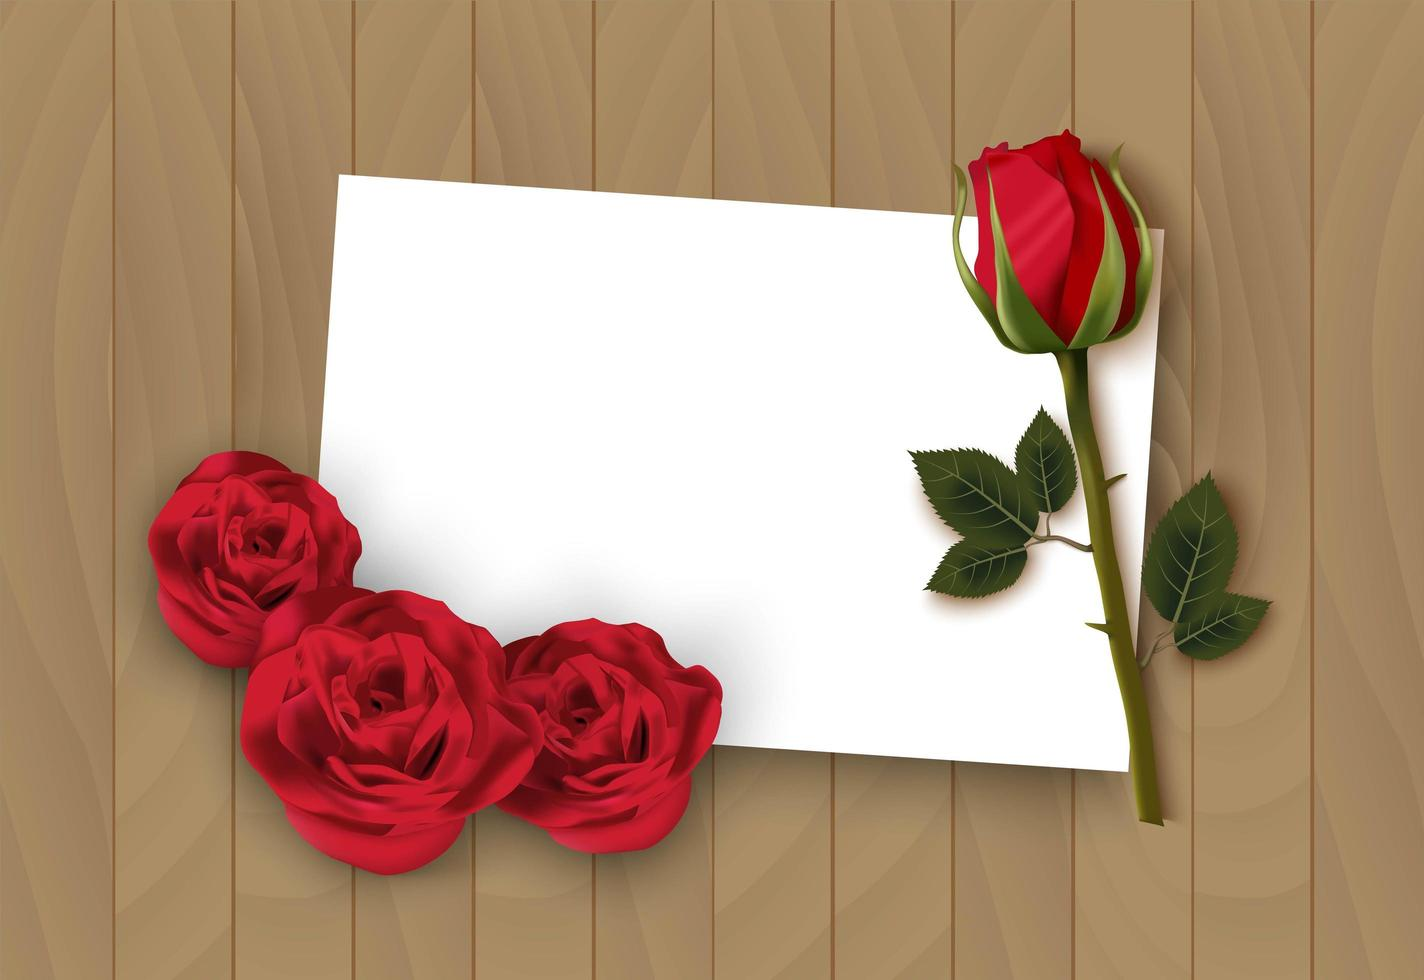 Valentines day wooden background with rose and white paper